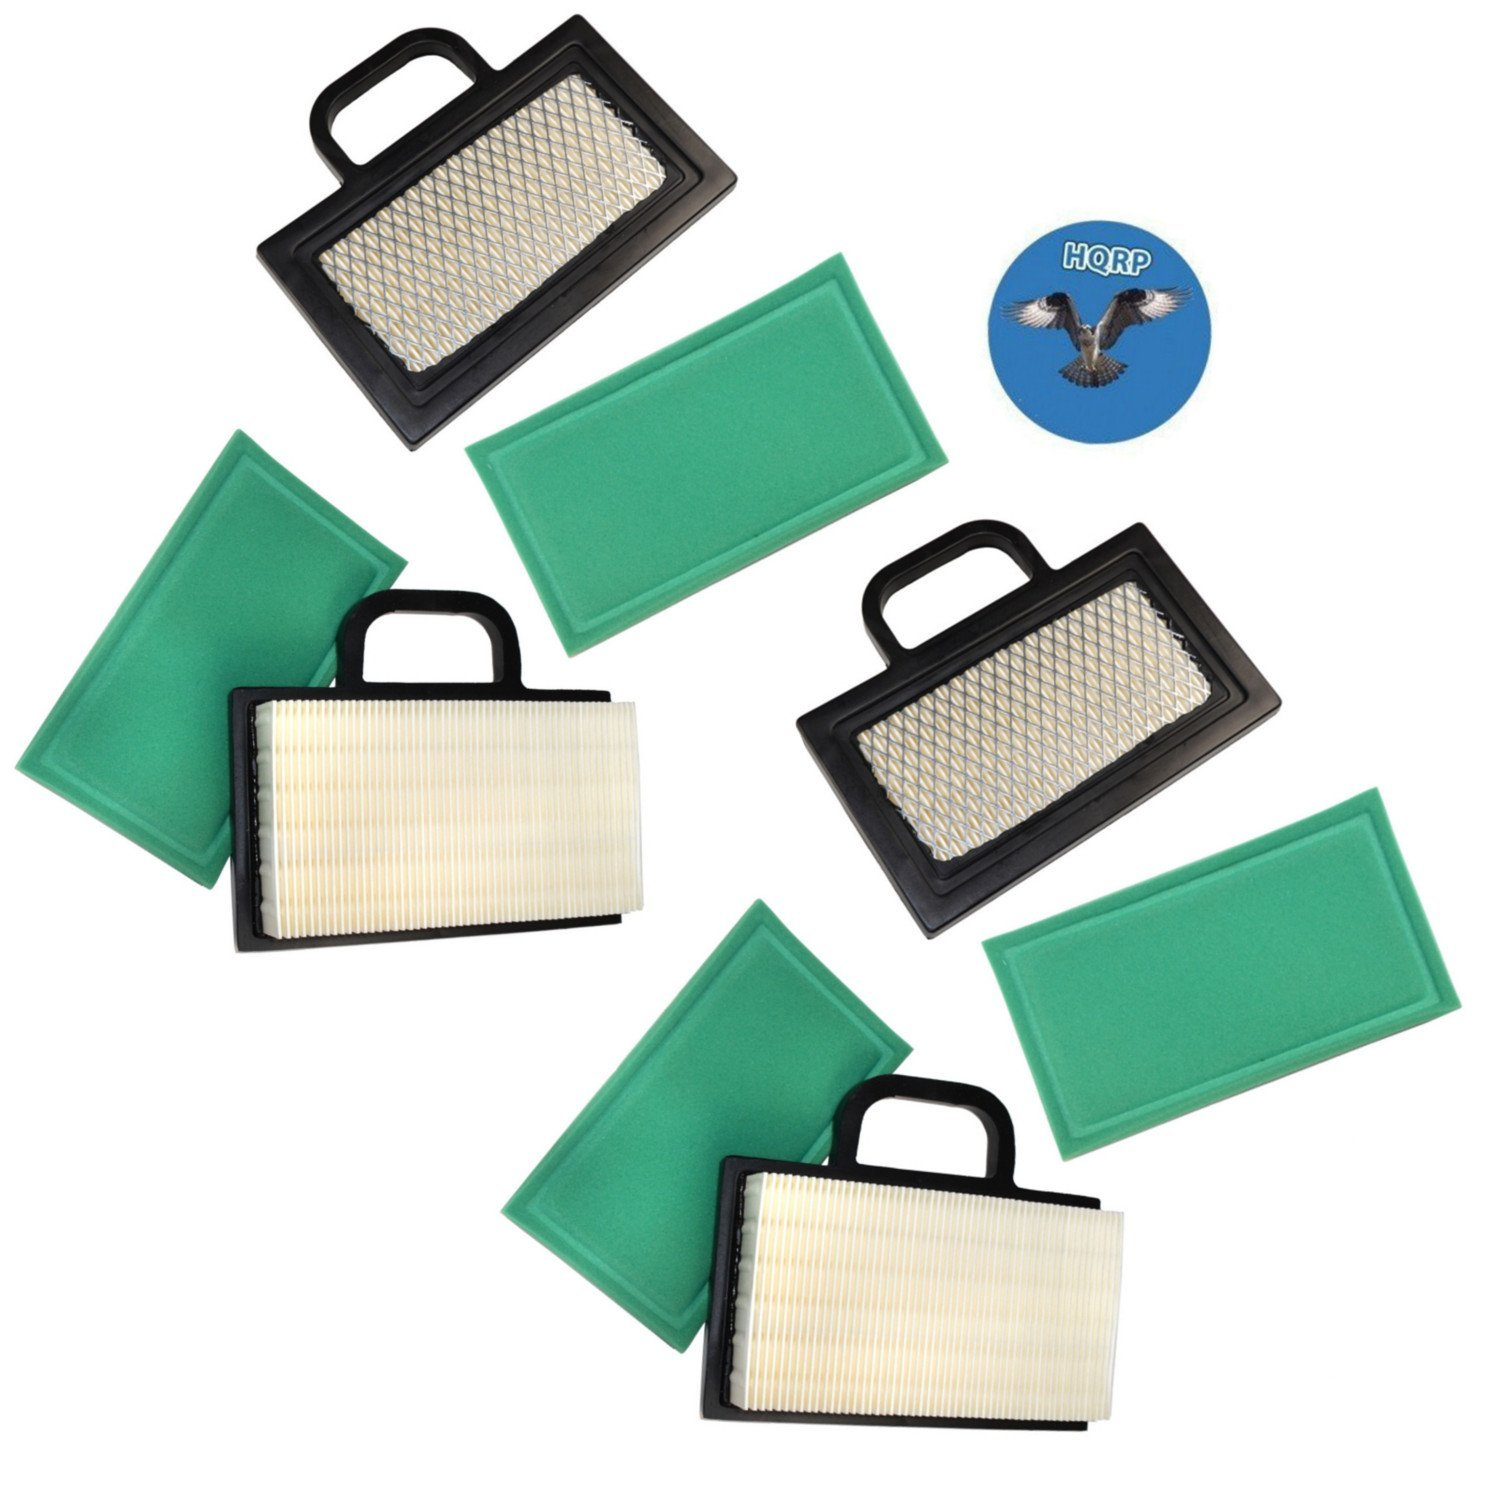 HQRP 4-pack Air Filter Kit (Cartridge w  Pre-cleaner) for John Deere Sabre Scotts 1846HMS 2046HV S2046 S2546 S2548 Z425... by HQRP